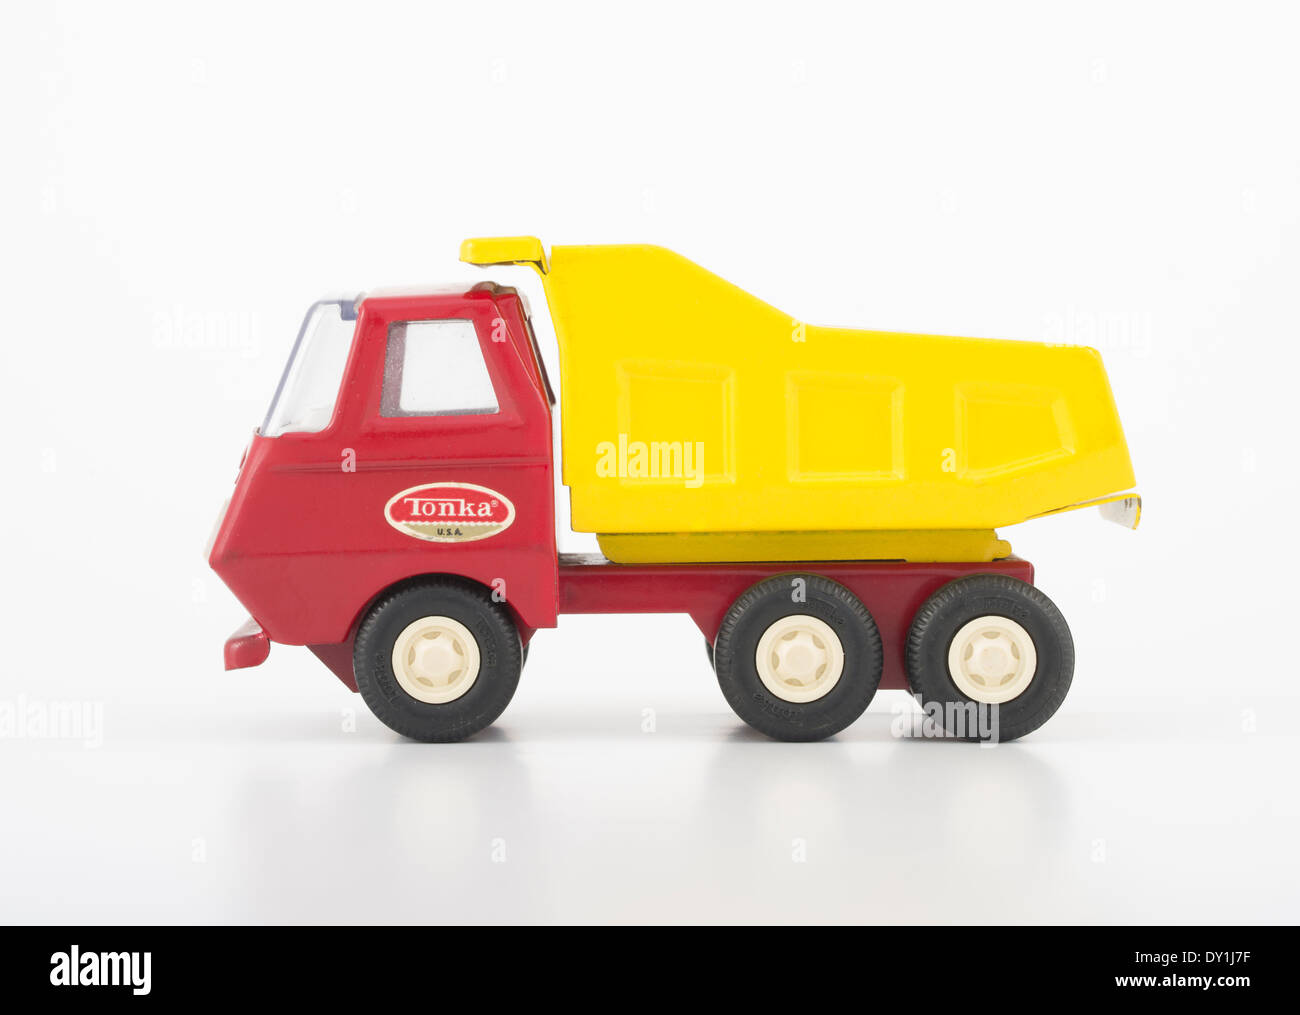 tonka toys 535 red and yellow dump truck 1968 to 70 u0027s stock photo